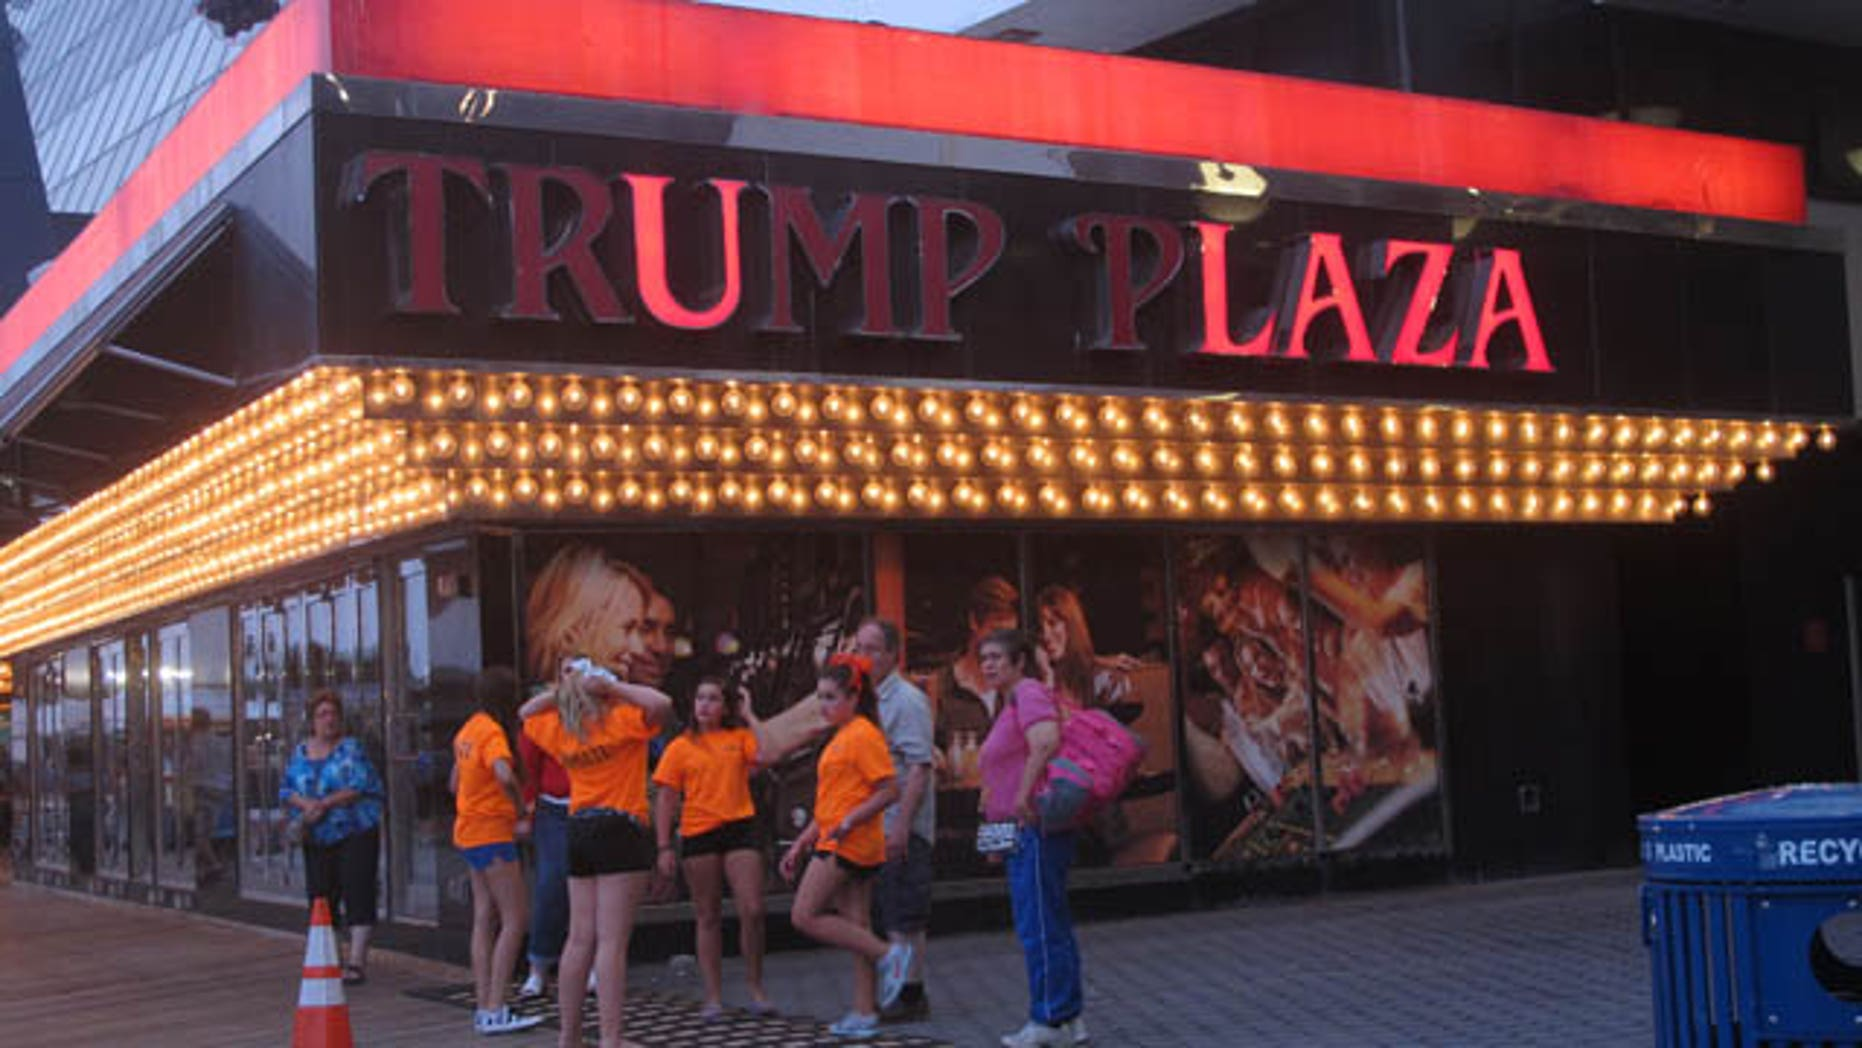 FILE - In this July 24, 2014 file photo, several lights are burned out in the illuminated facade of Trump Plaza Hotel Casino in Atlantic City N.J. (AP Photo/Wayne Parry, FILE)